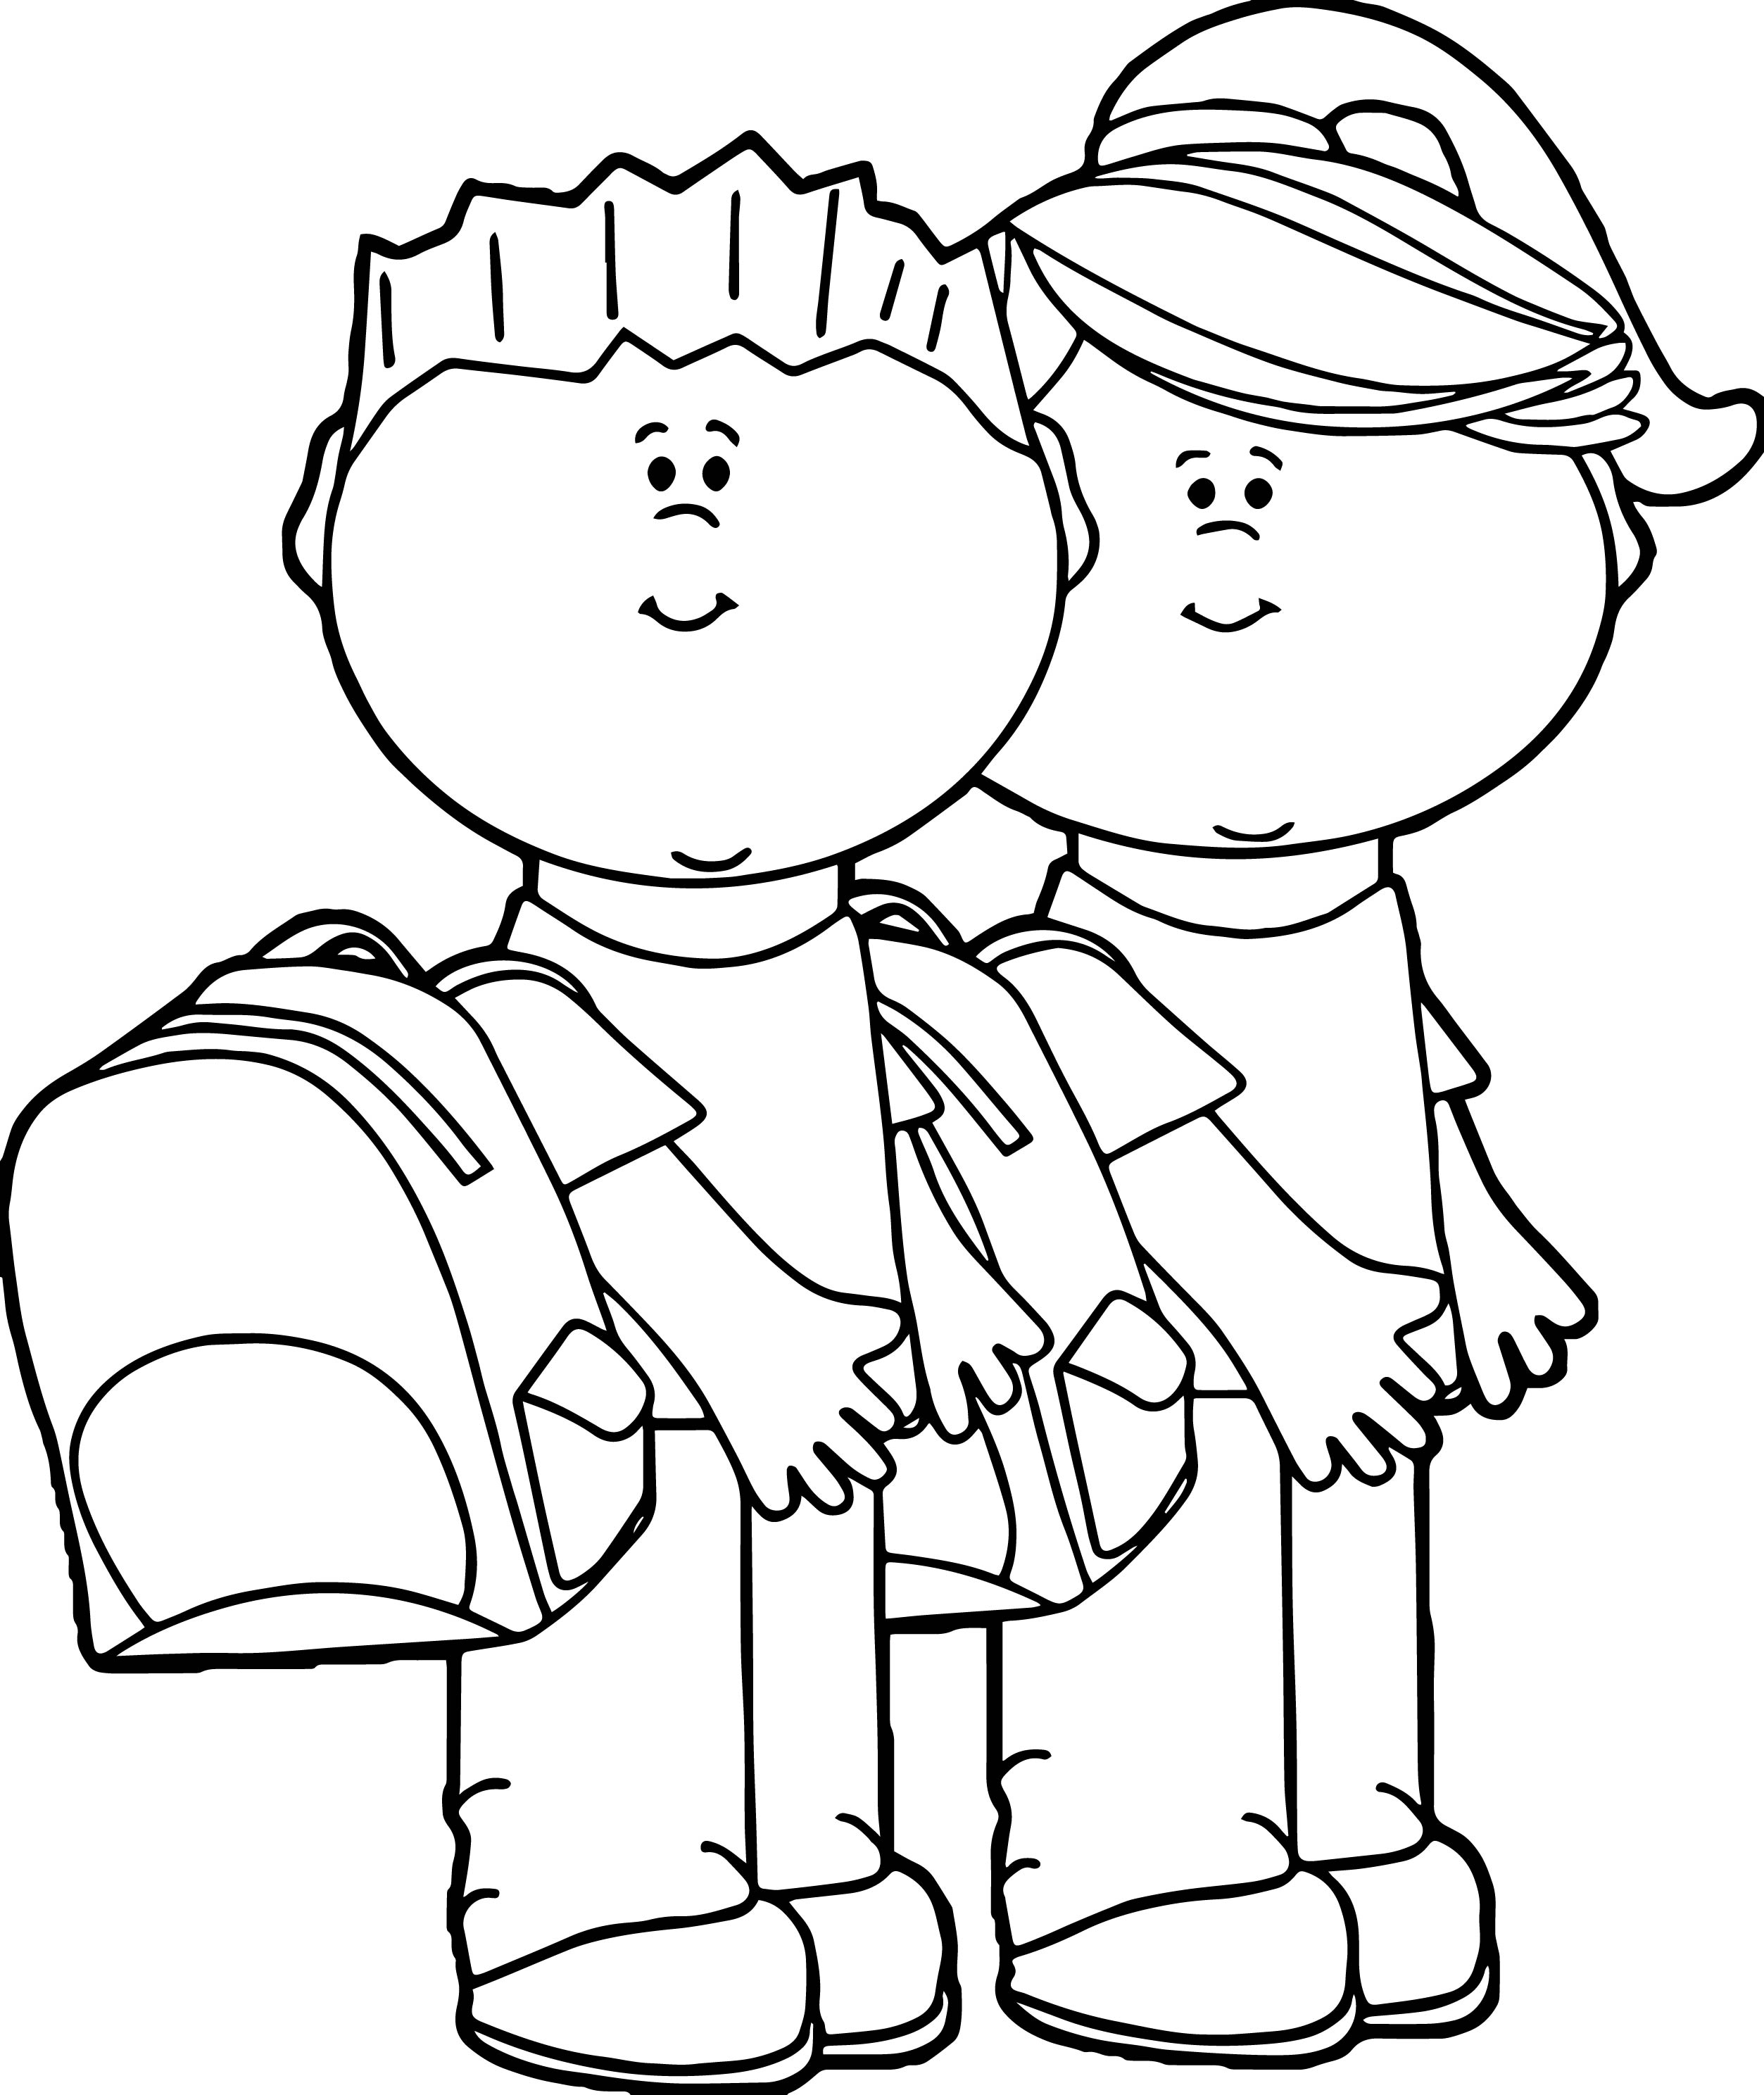 school children coloring pages - photo#15